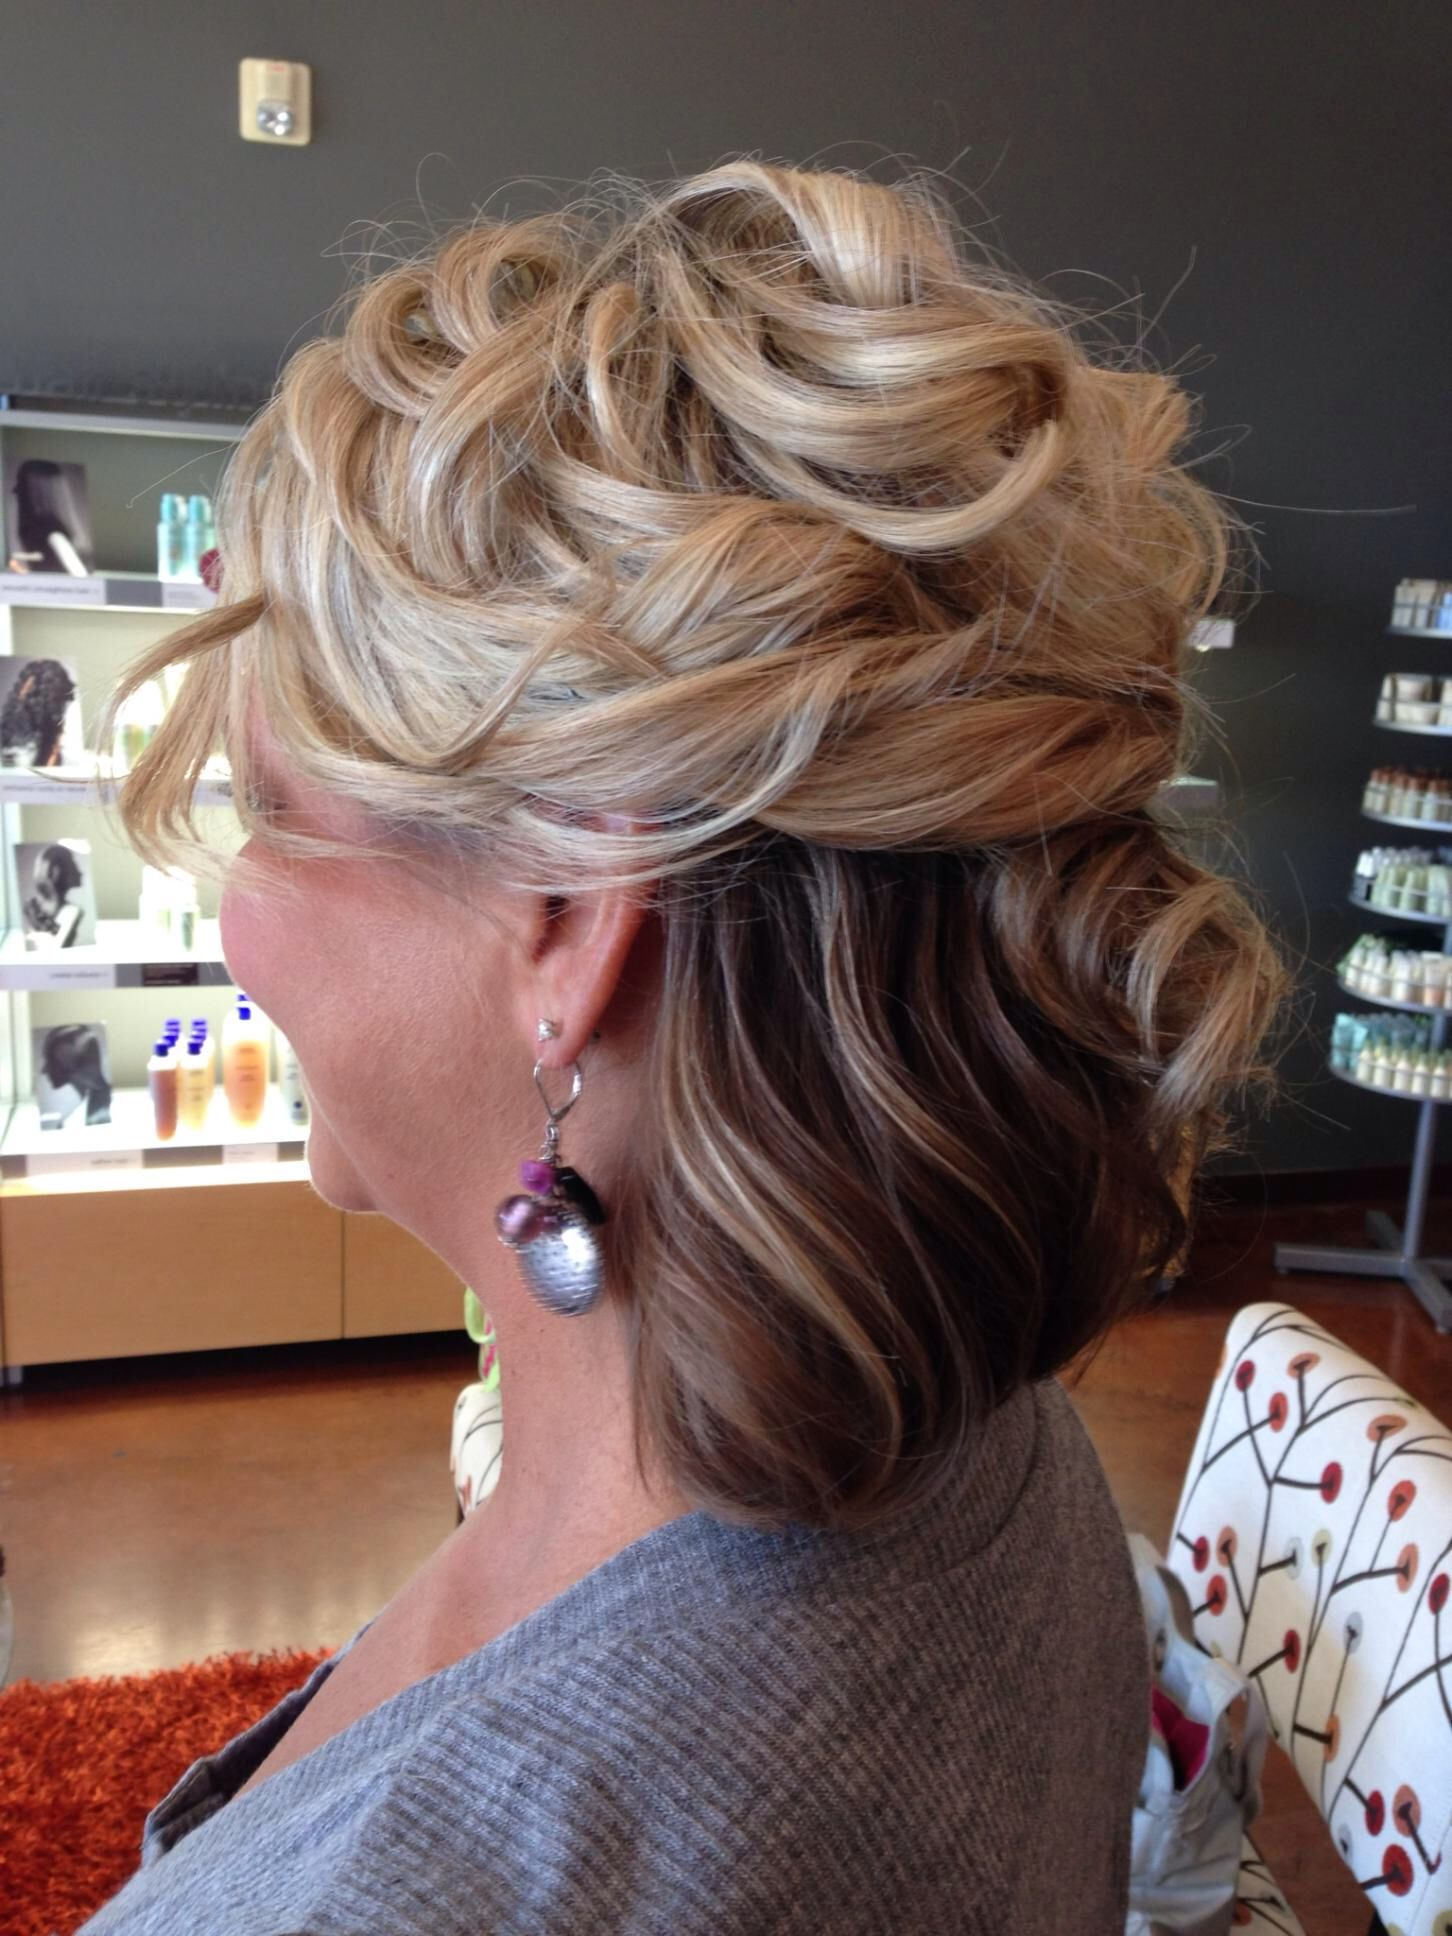 34+ Mother of the bride hairstyles for curly hair inspirations